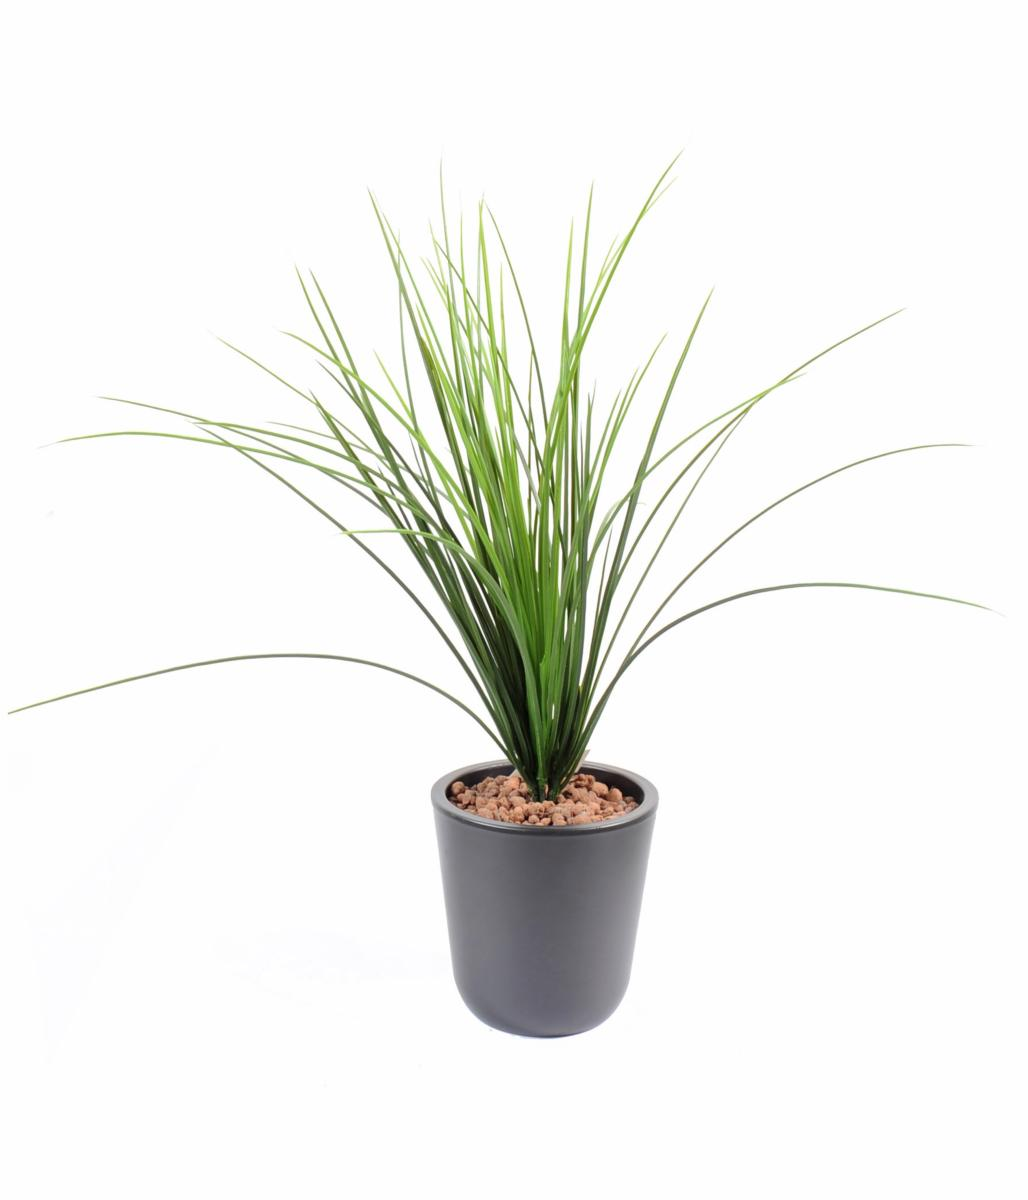 Plante artificielle herbe onion grass plastique en piquet for Plante suspendue exterieur